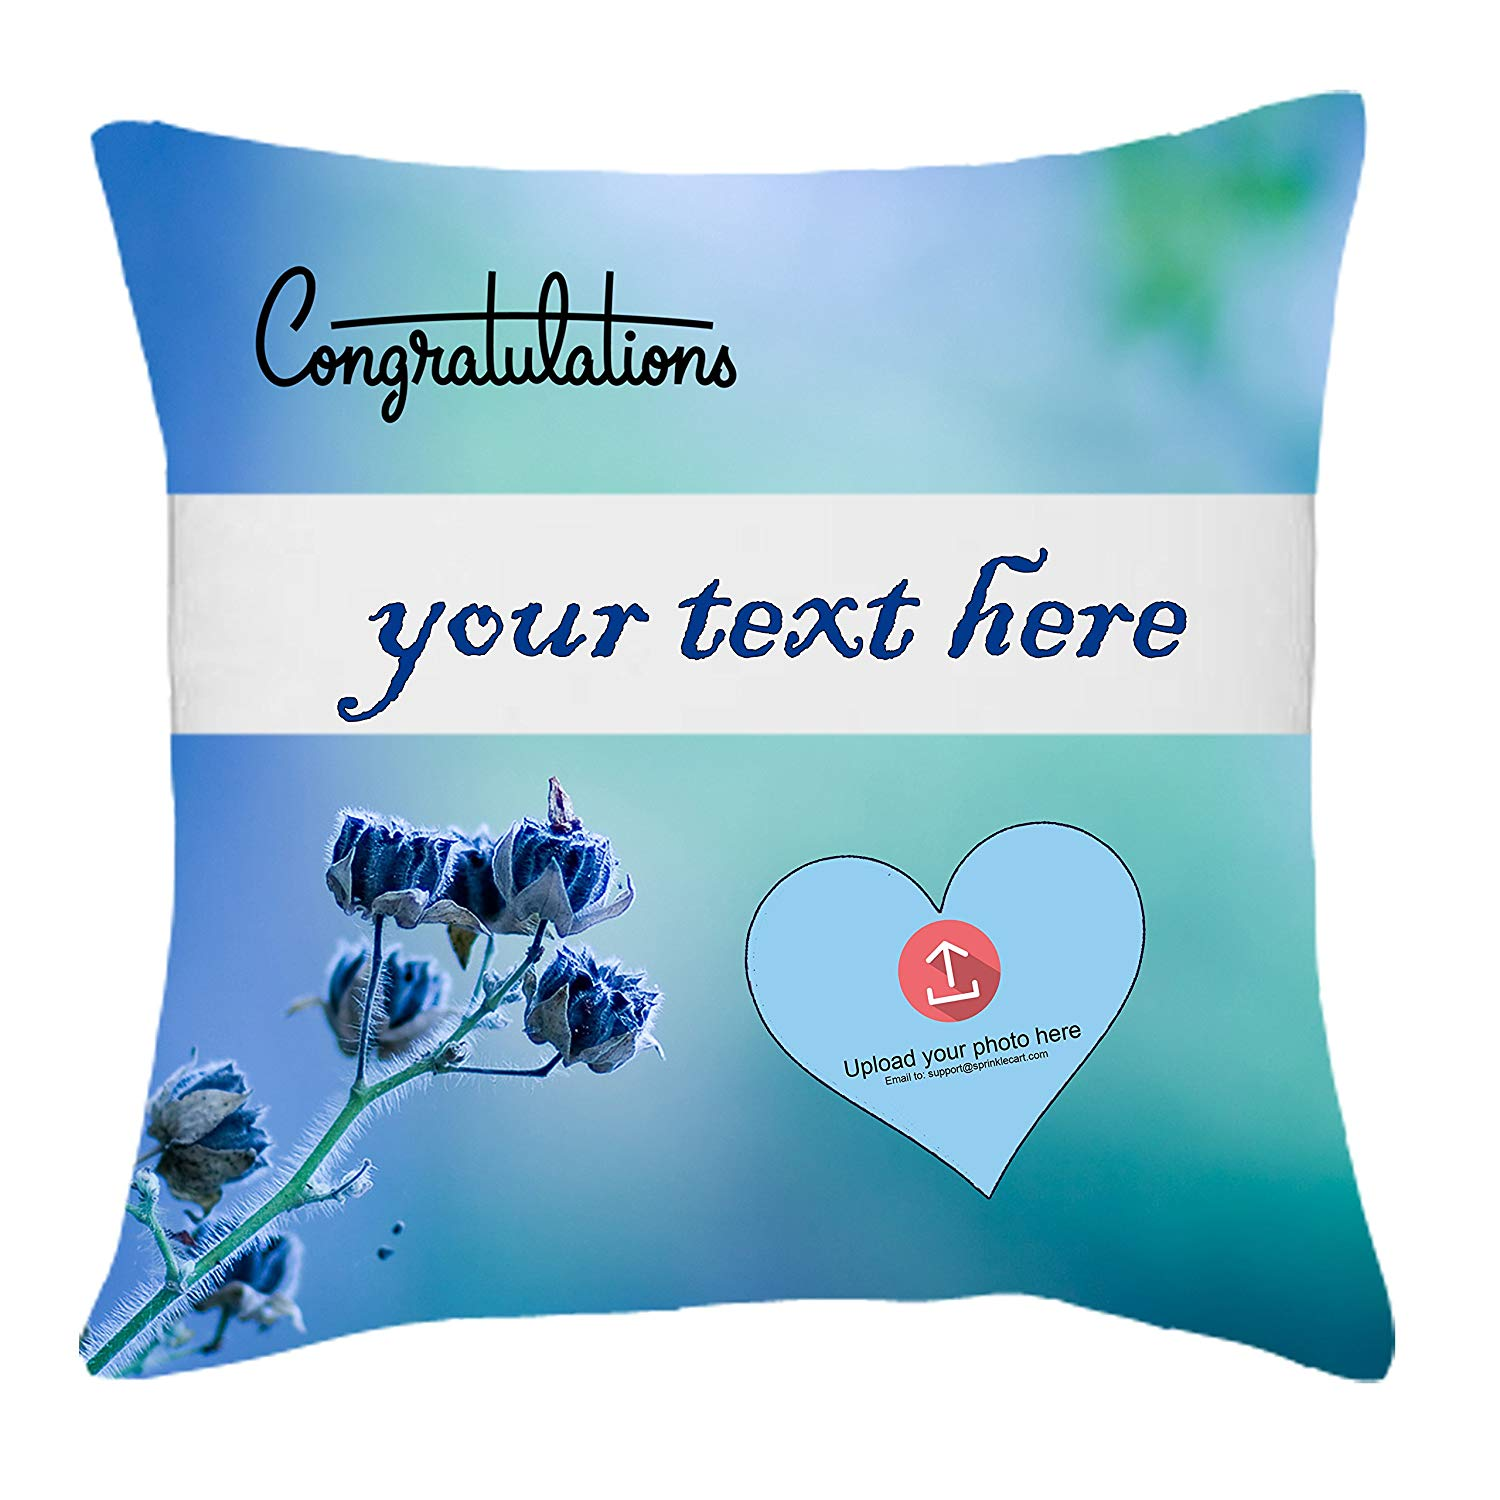 Congratulations Gift | Sprinklecart's Personalized Text and Photo Printed 15″ x 15″ Inches Cushions for The Achiever